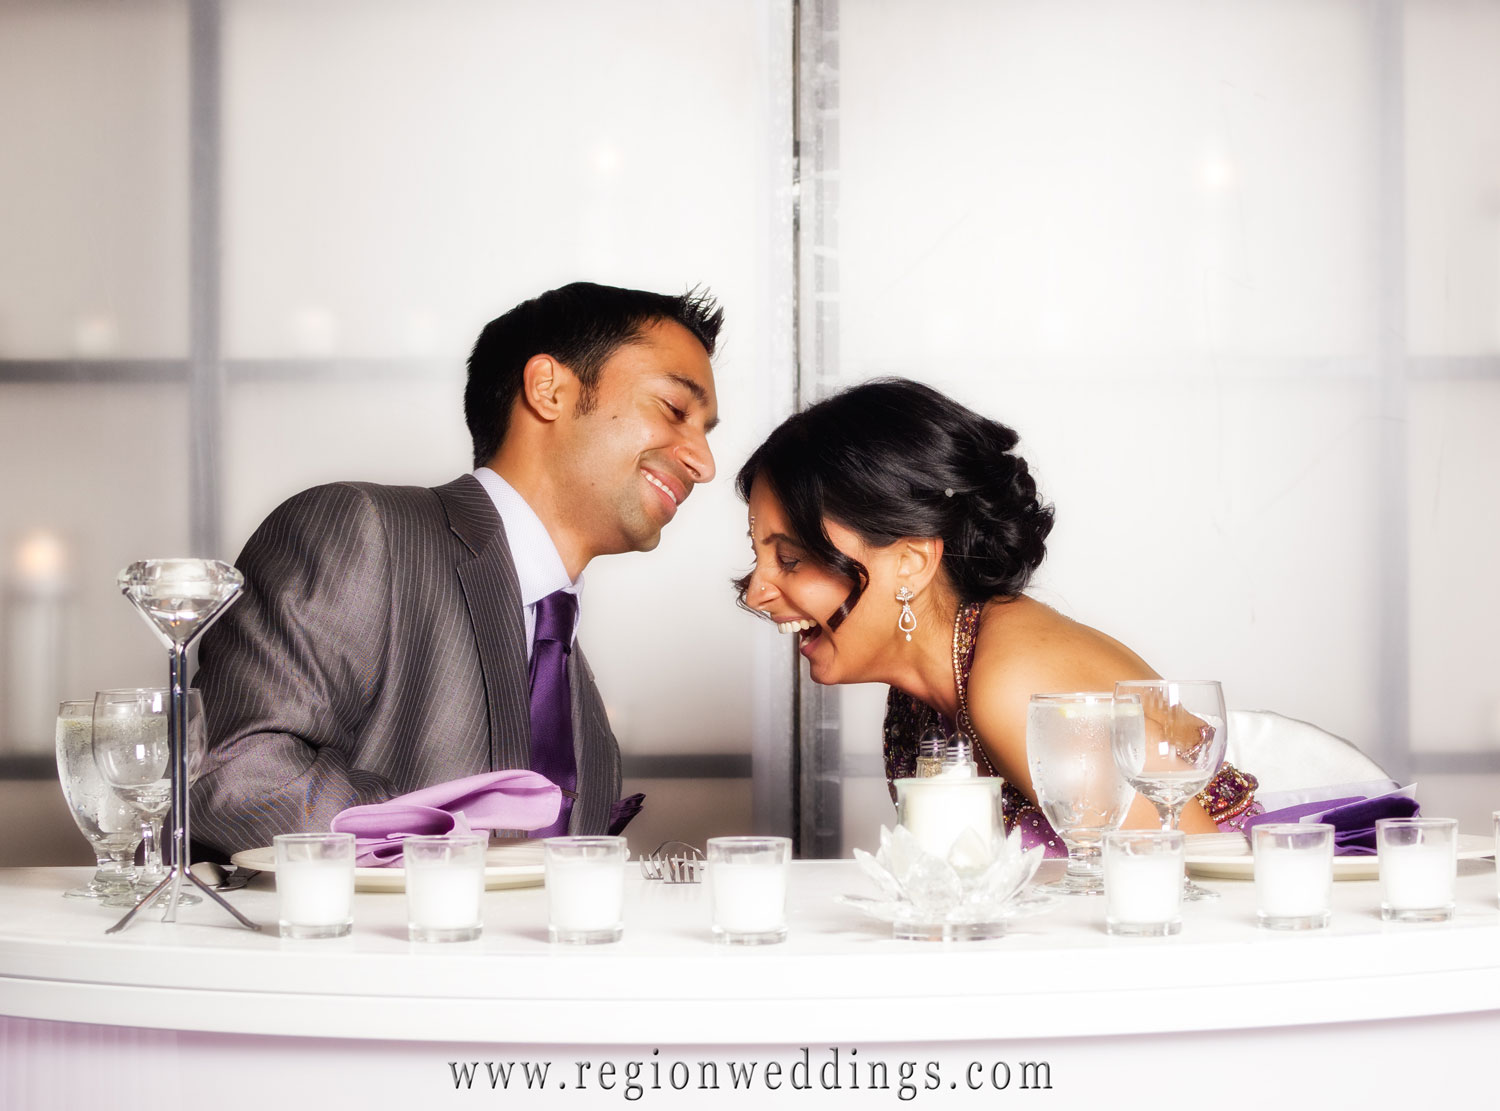 Candid wedding photo of bride and groom laughing at the head table of their wedding reception at the Radisson Hotel in Merrillville.